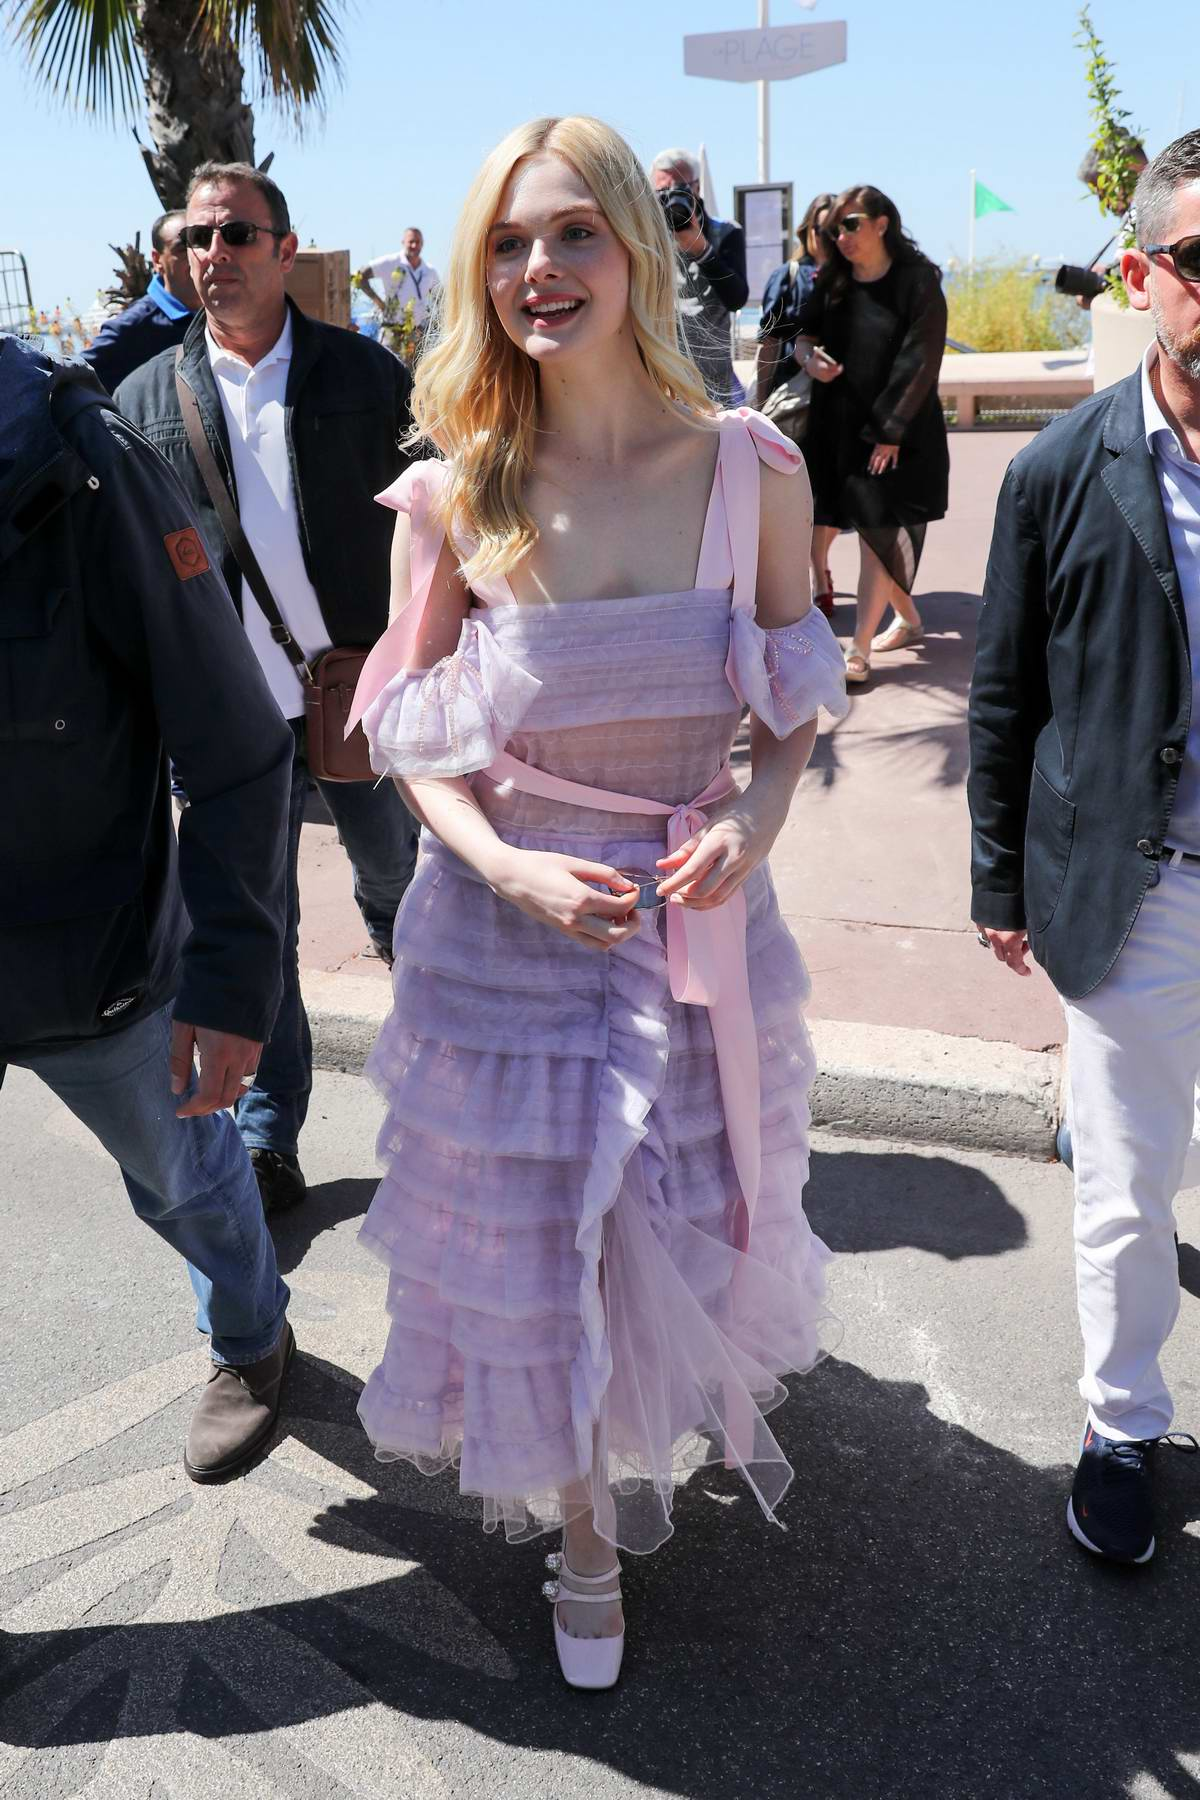 Elle Fanning looks pretty in a lavender dress outside the Martinez hotel during the 72nd Cannes Film Festival in Cannes, France